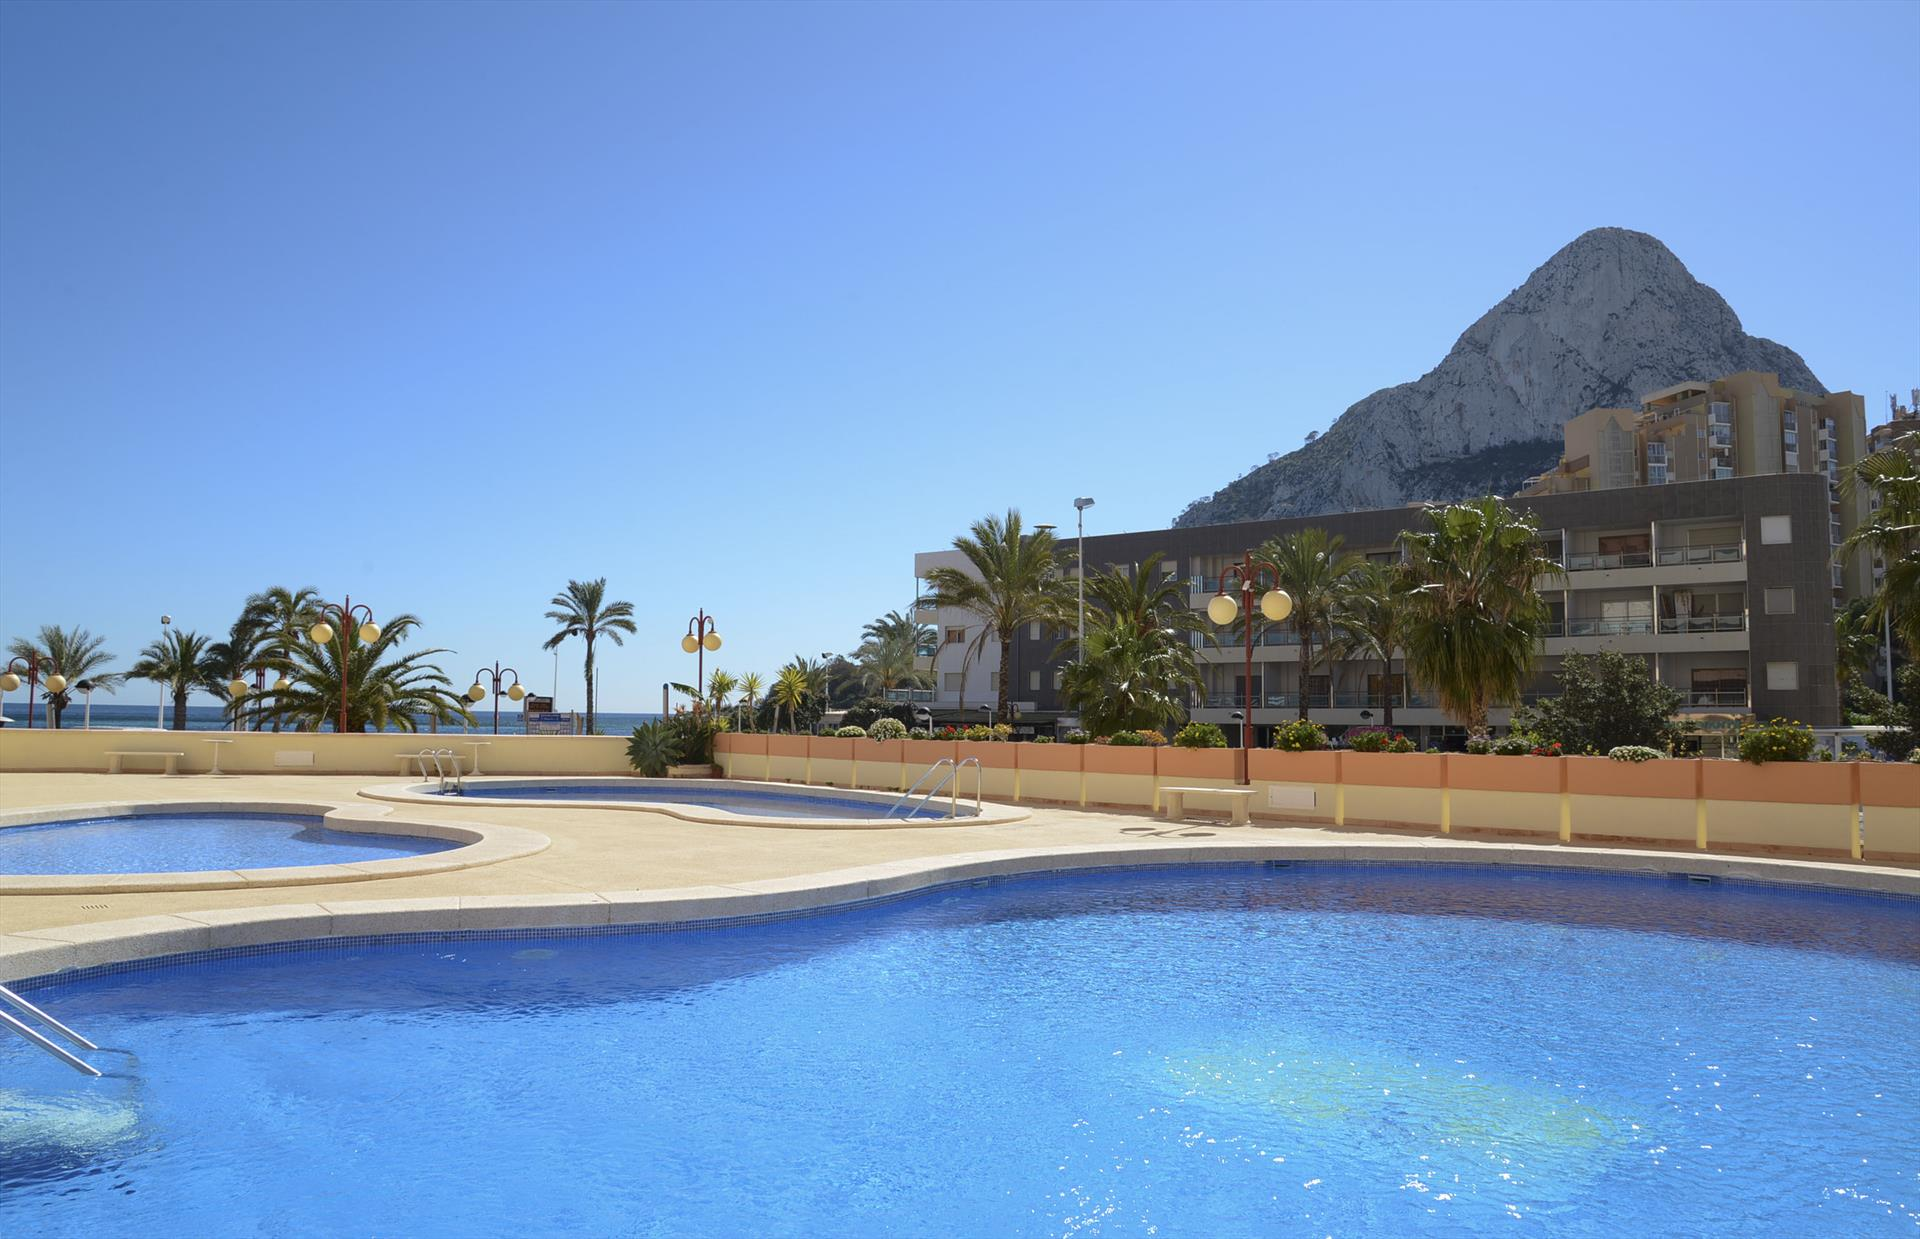 Apartamento Zafiro 34B, Apartment  with communal pool in Calpe, on the Costa Blanca, Spain for 4 persons.....